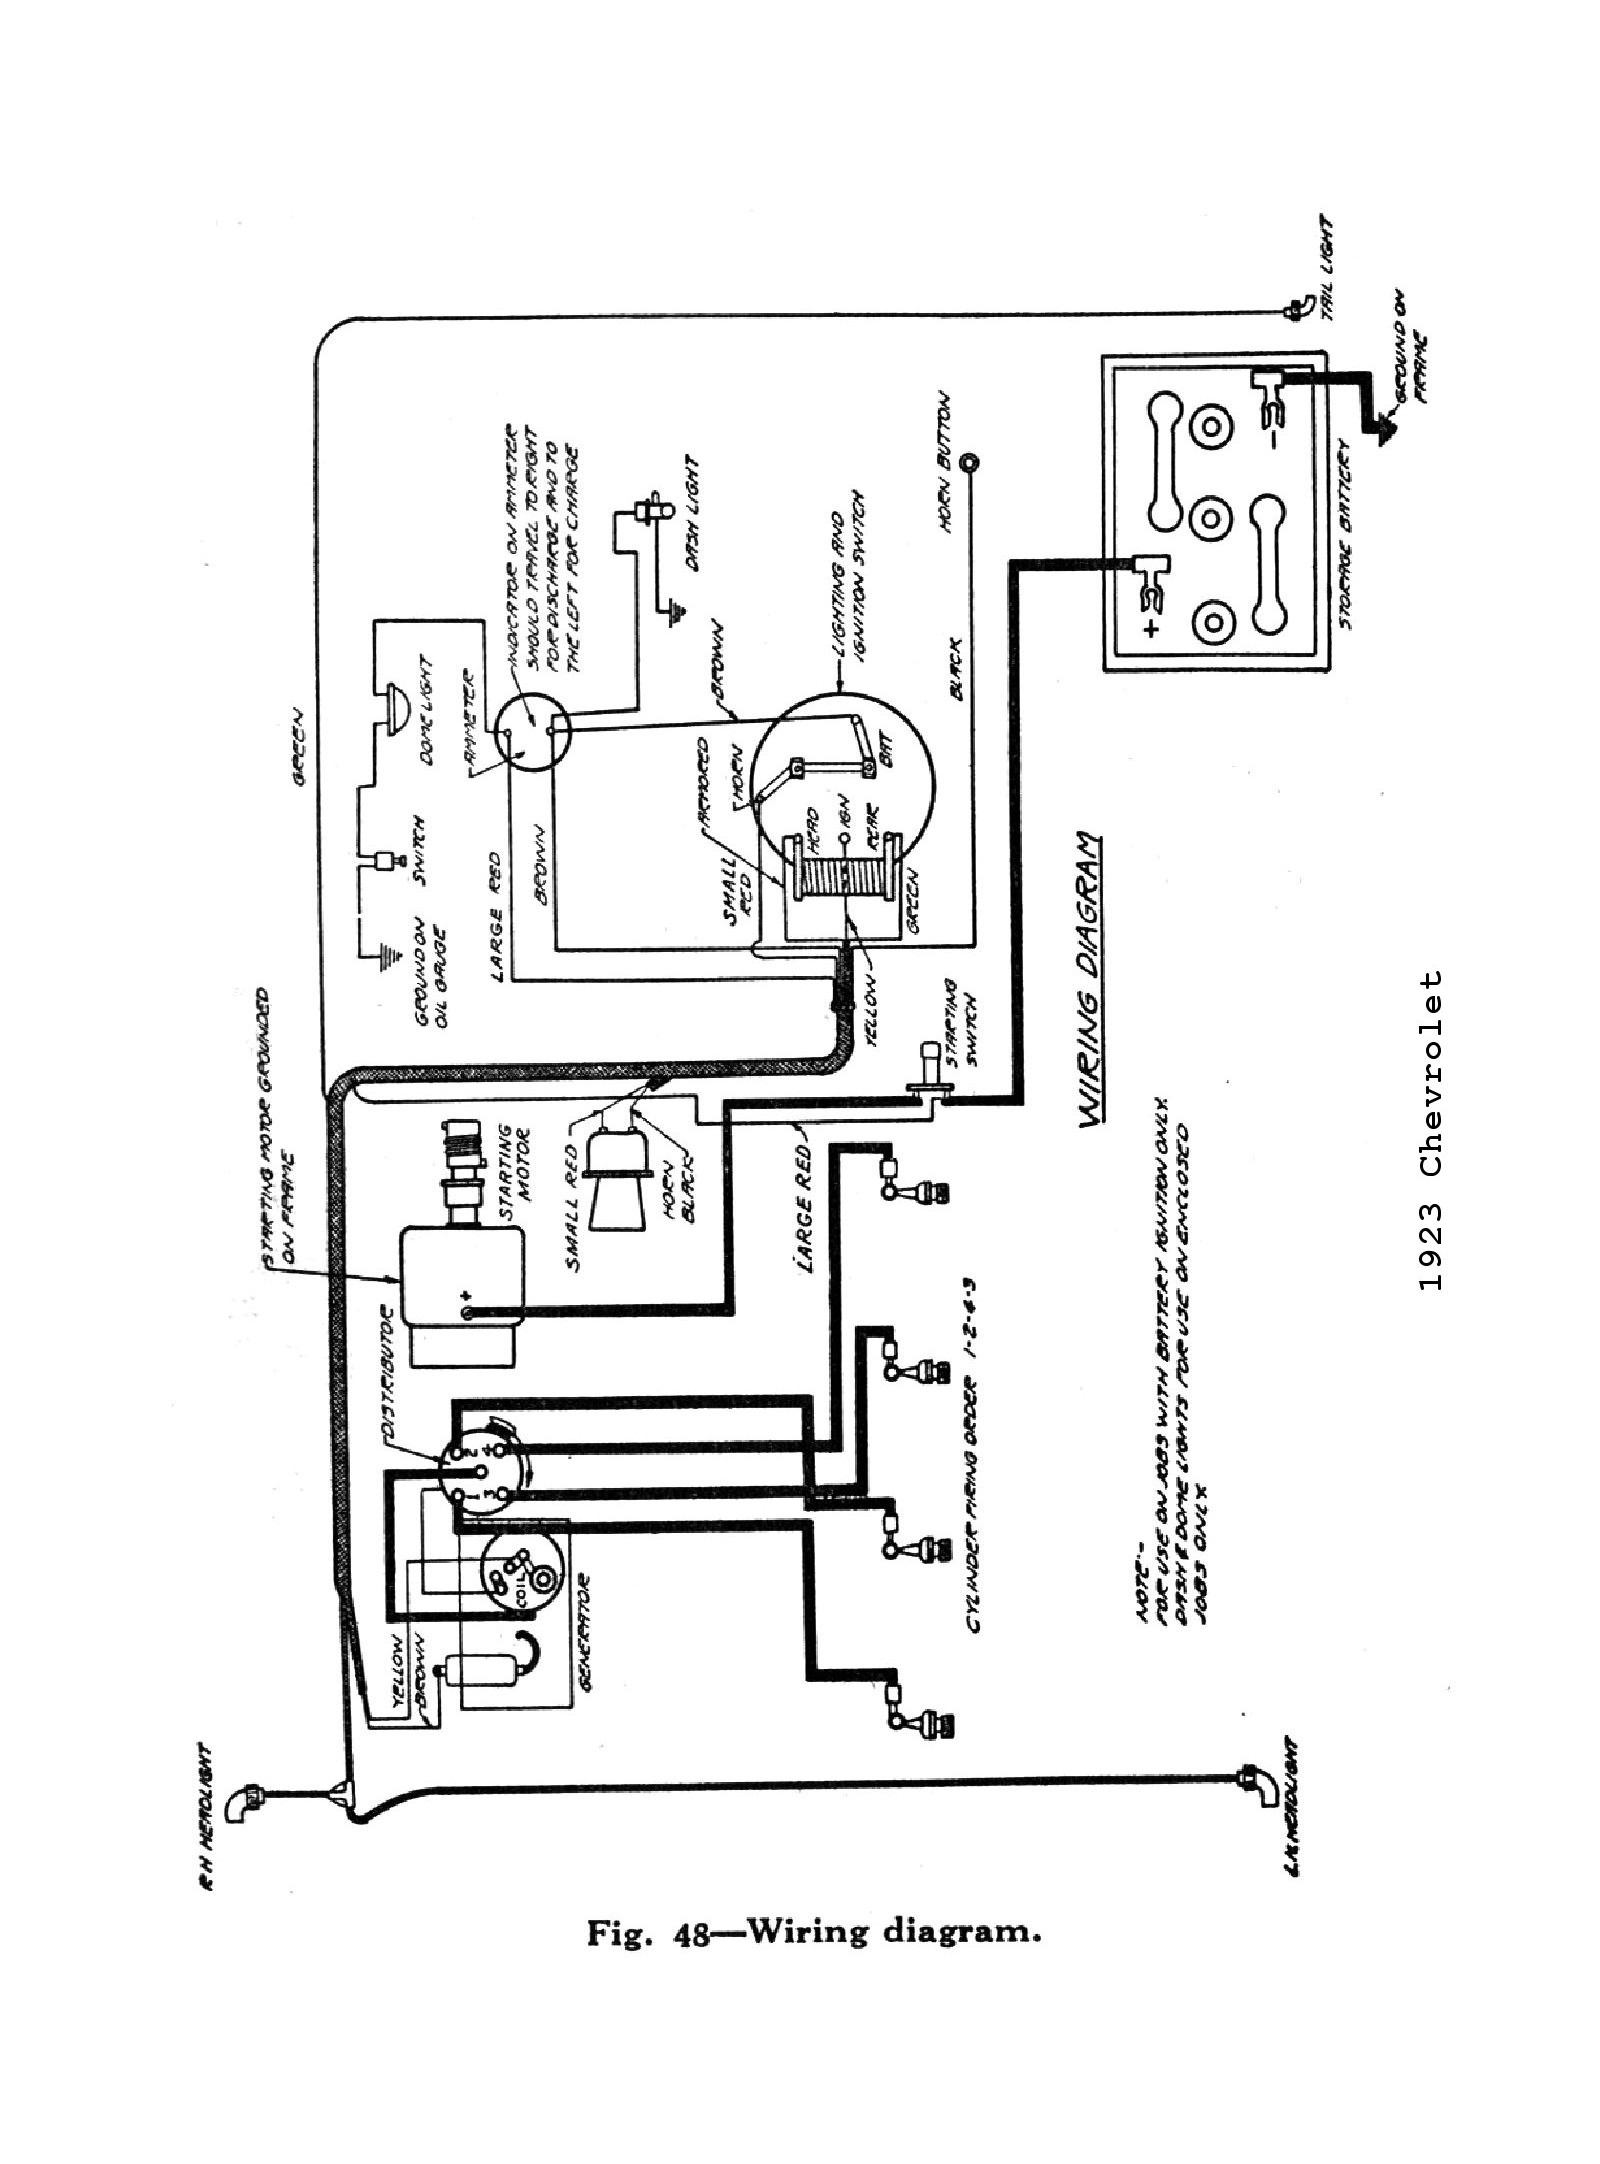 67 72 c10 heater wiring diagram  67  free engine image for user manual download